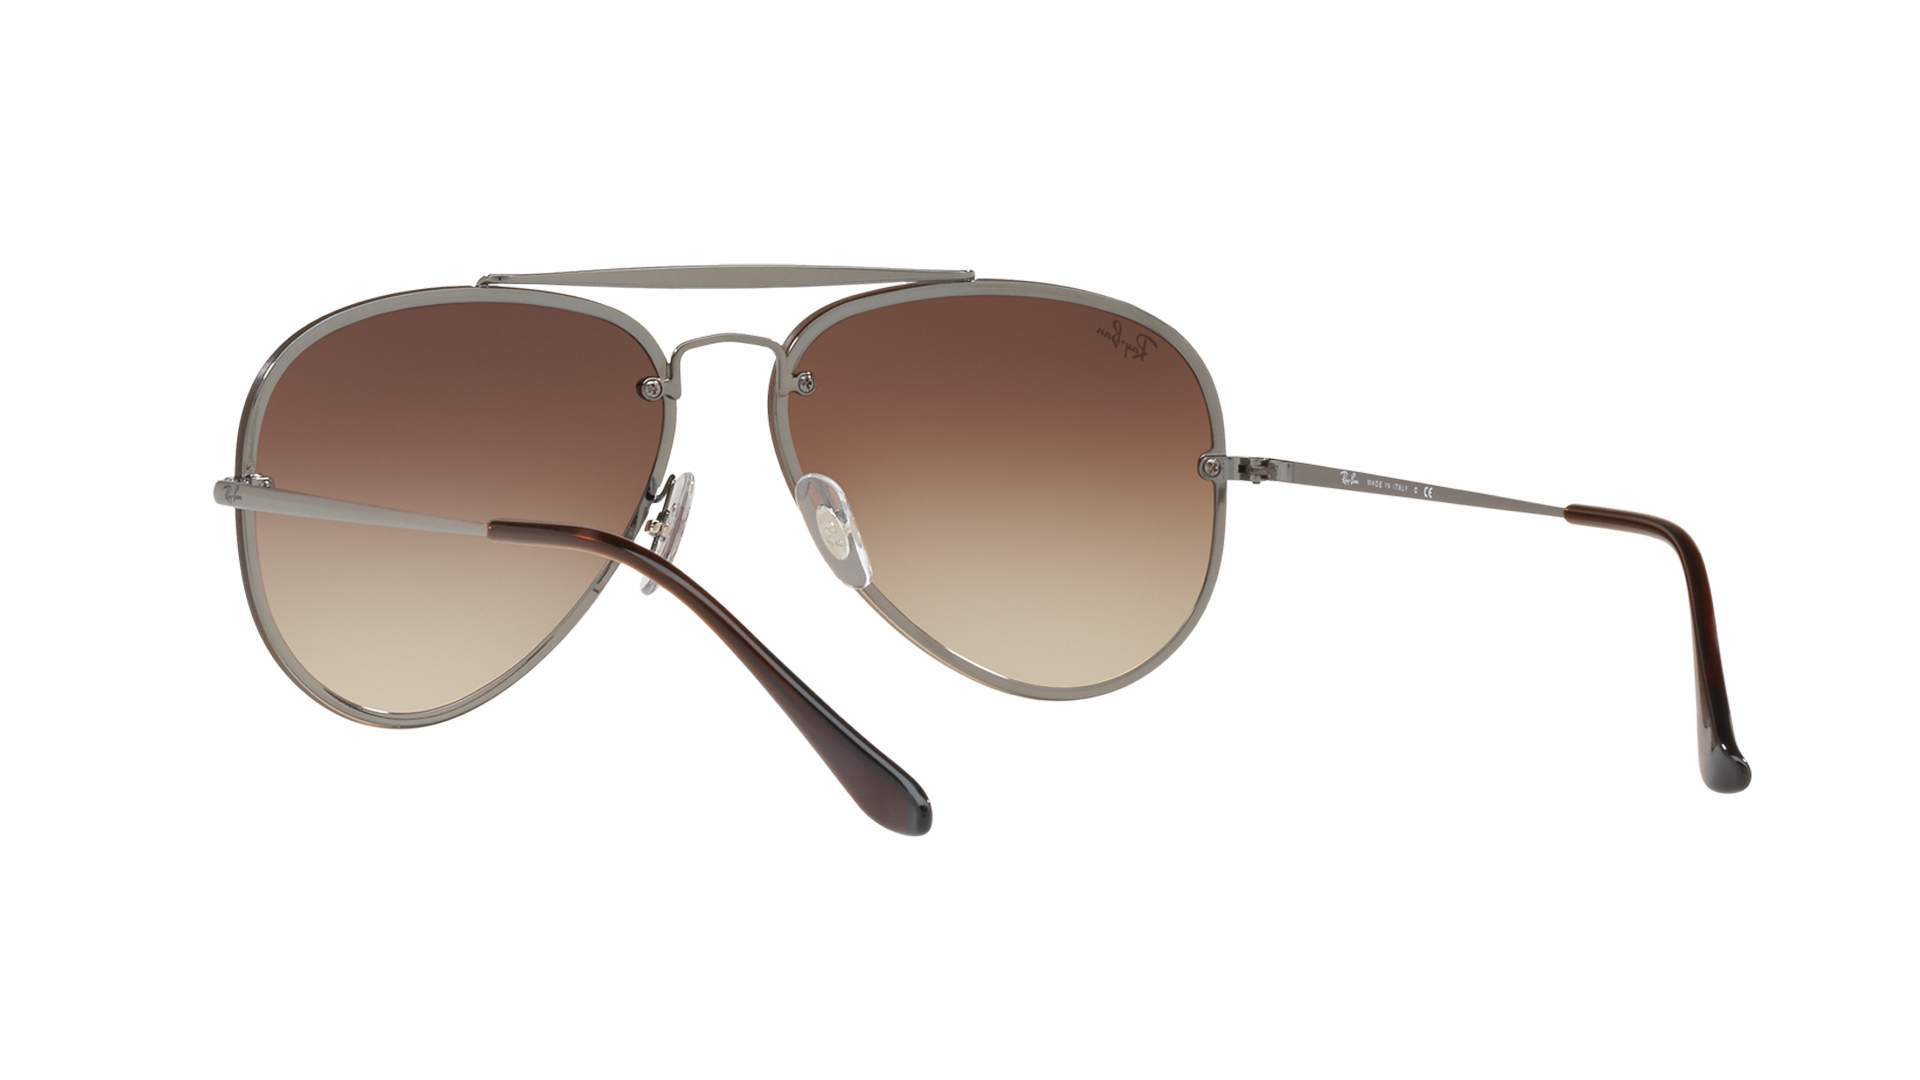 e6c085db66 Sunglasses Ray-Ban Aviator Blaze Silver RB3584N 004 13 61-13 Large Gradient